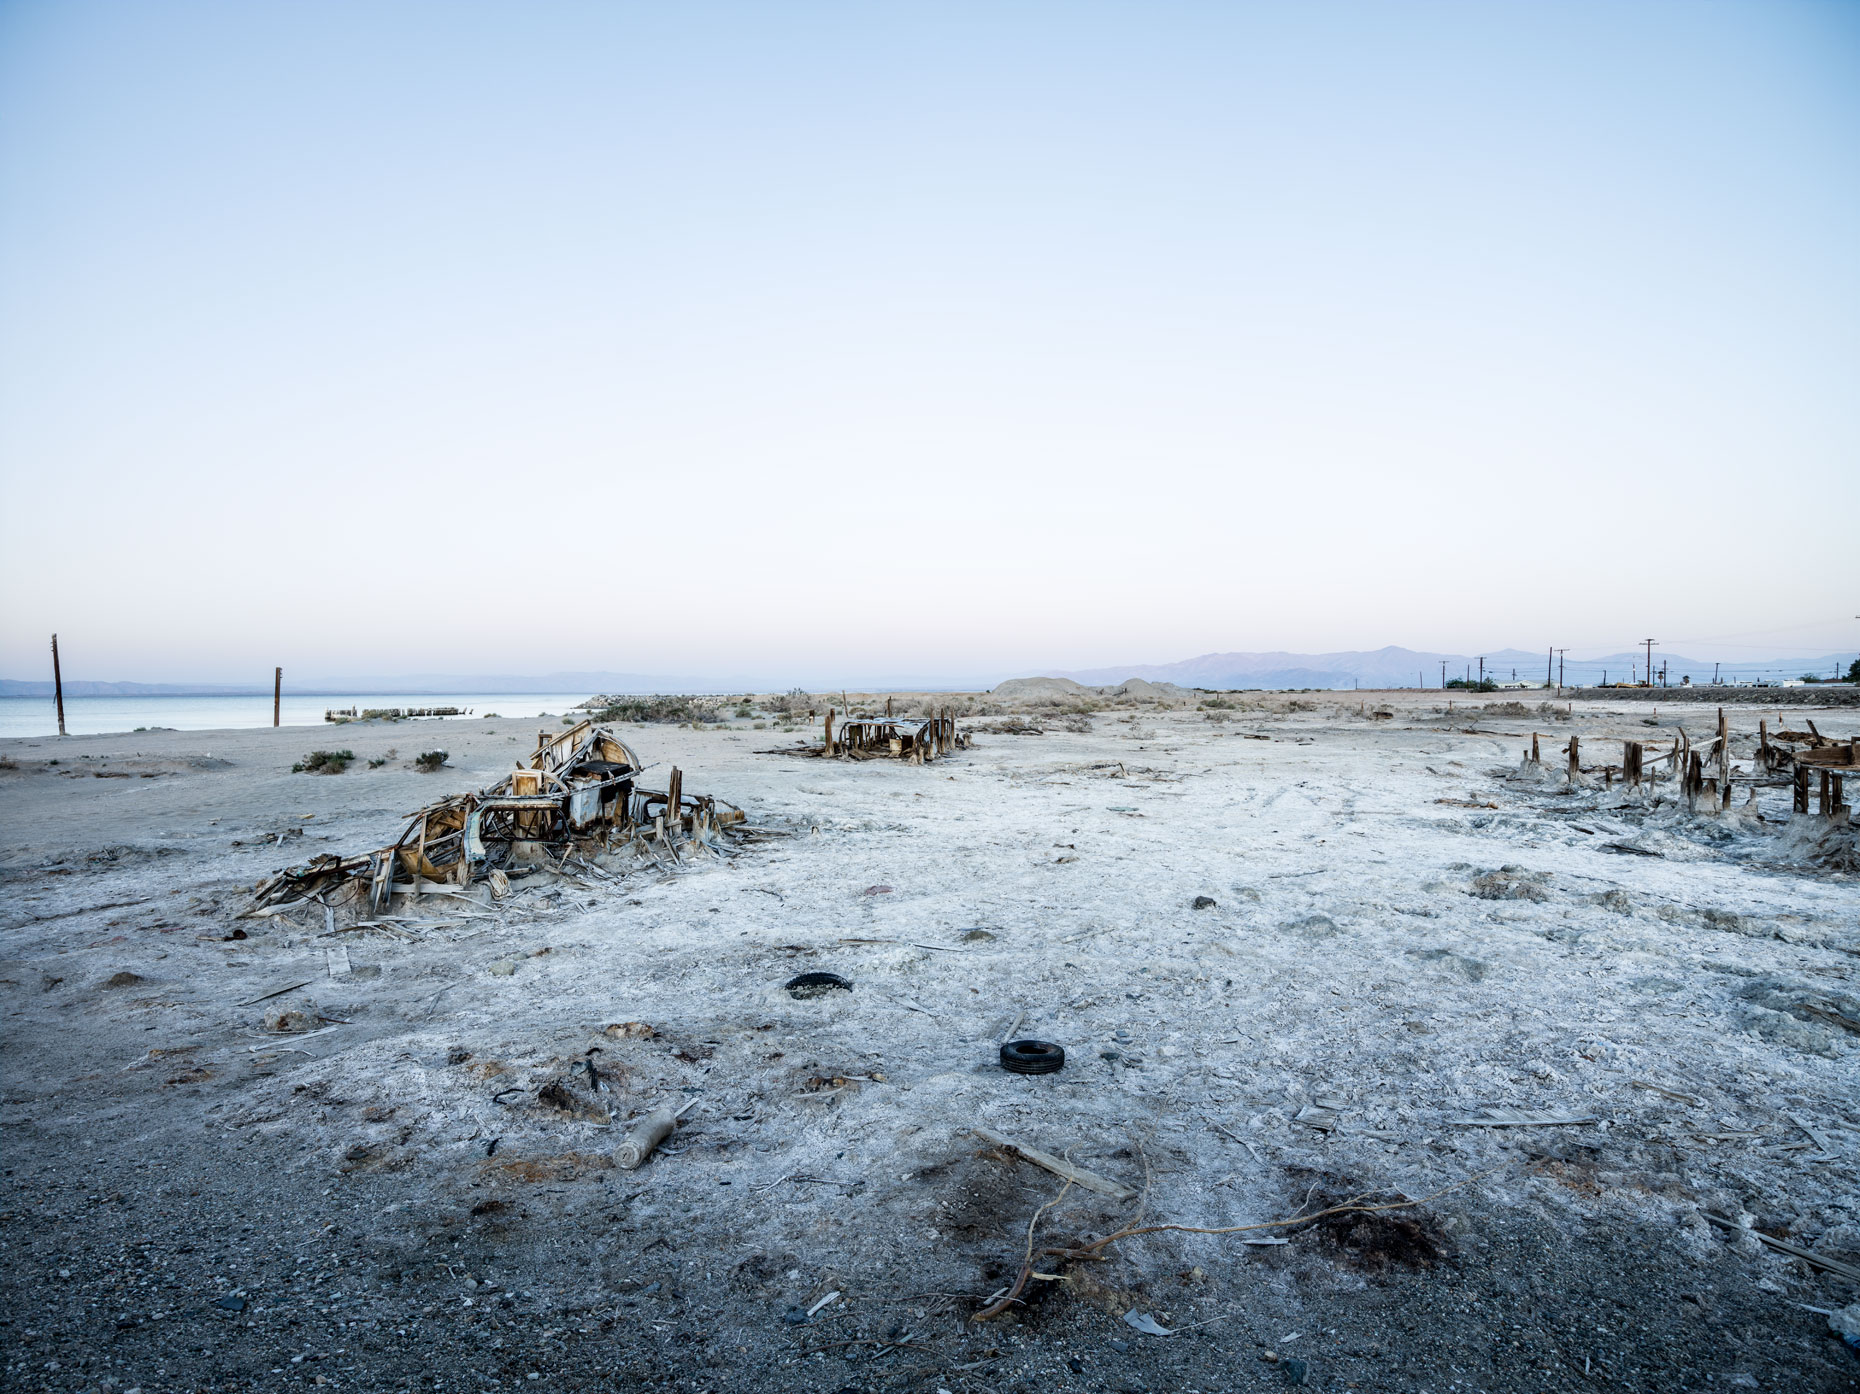 Bombay Beach empty lot of sand with wrecked ships on the Salton Sea